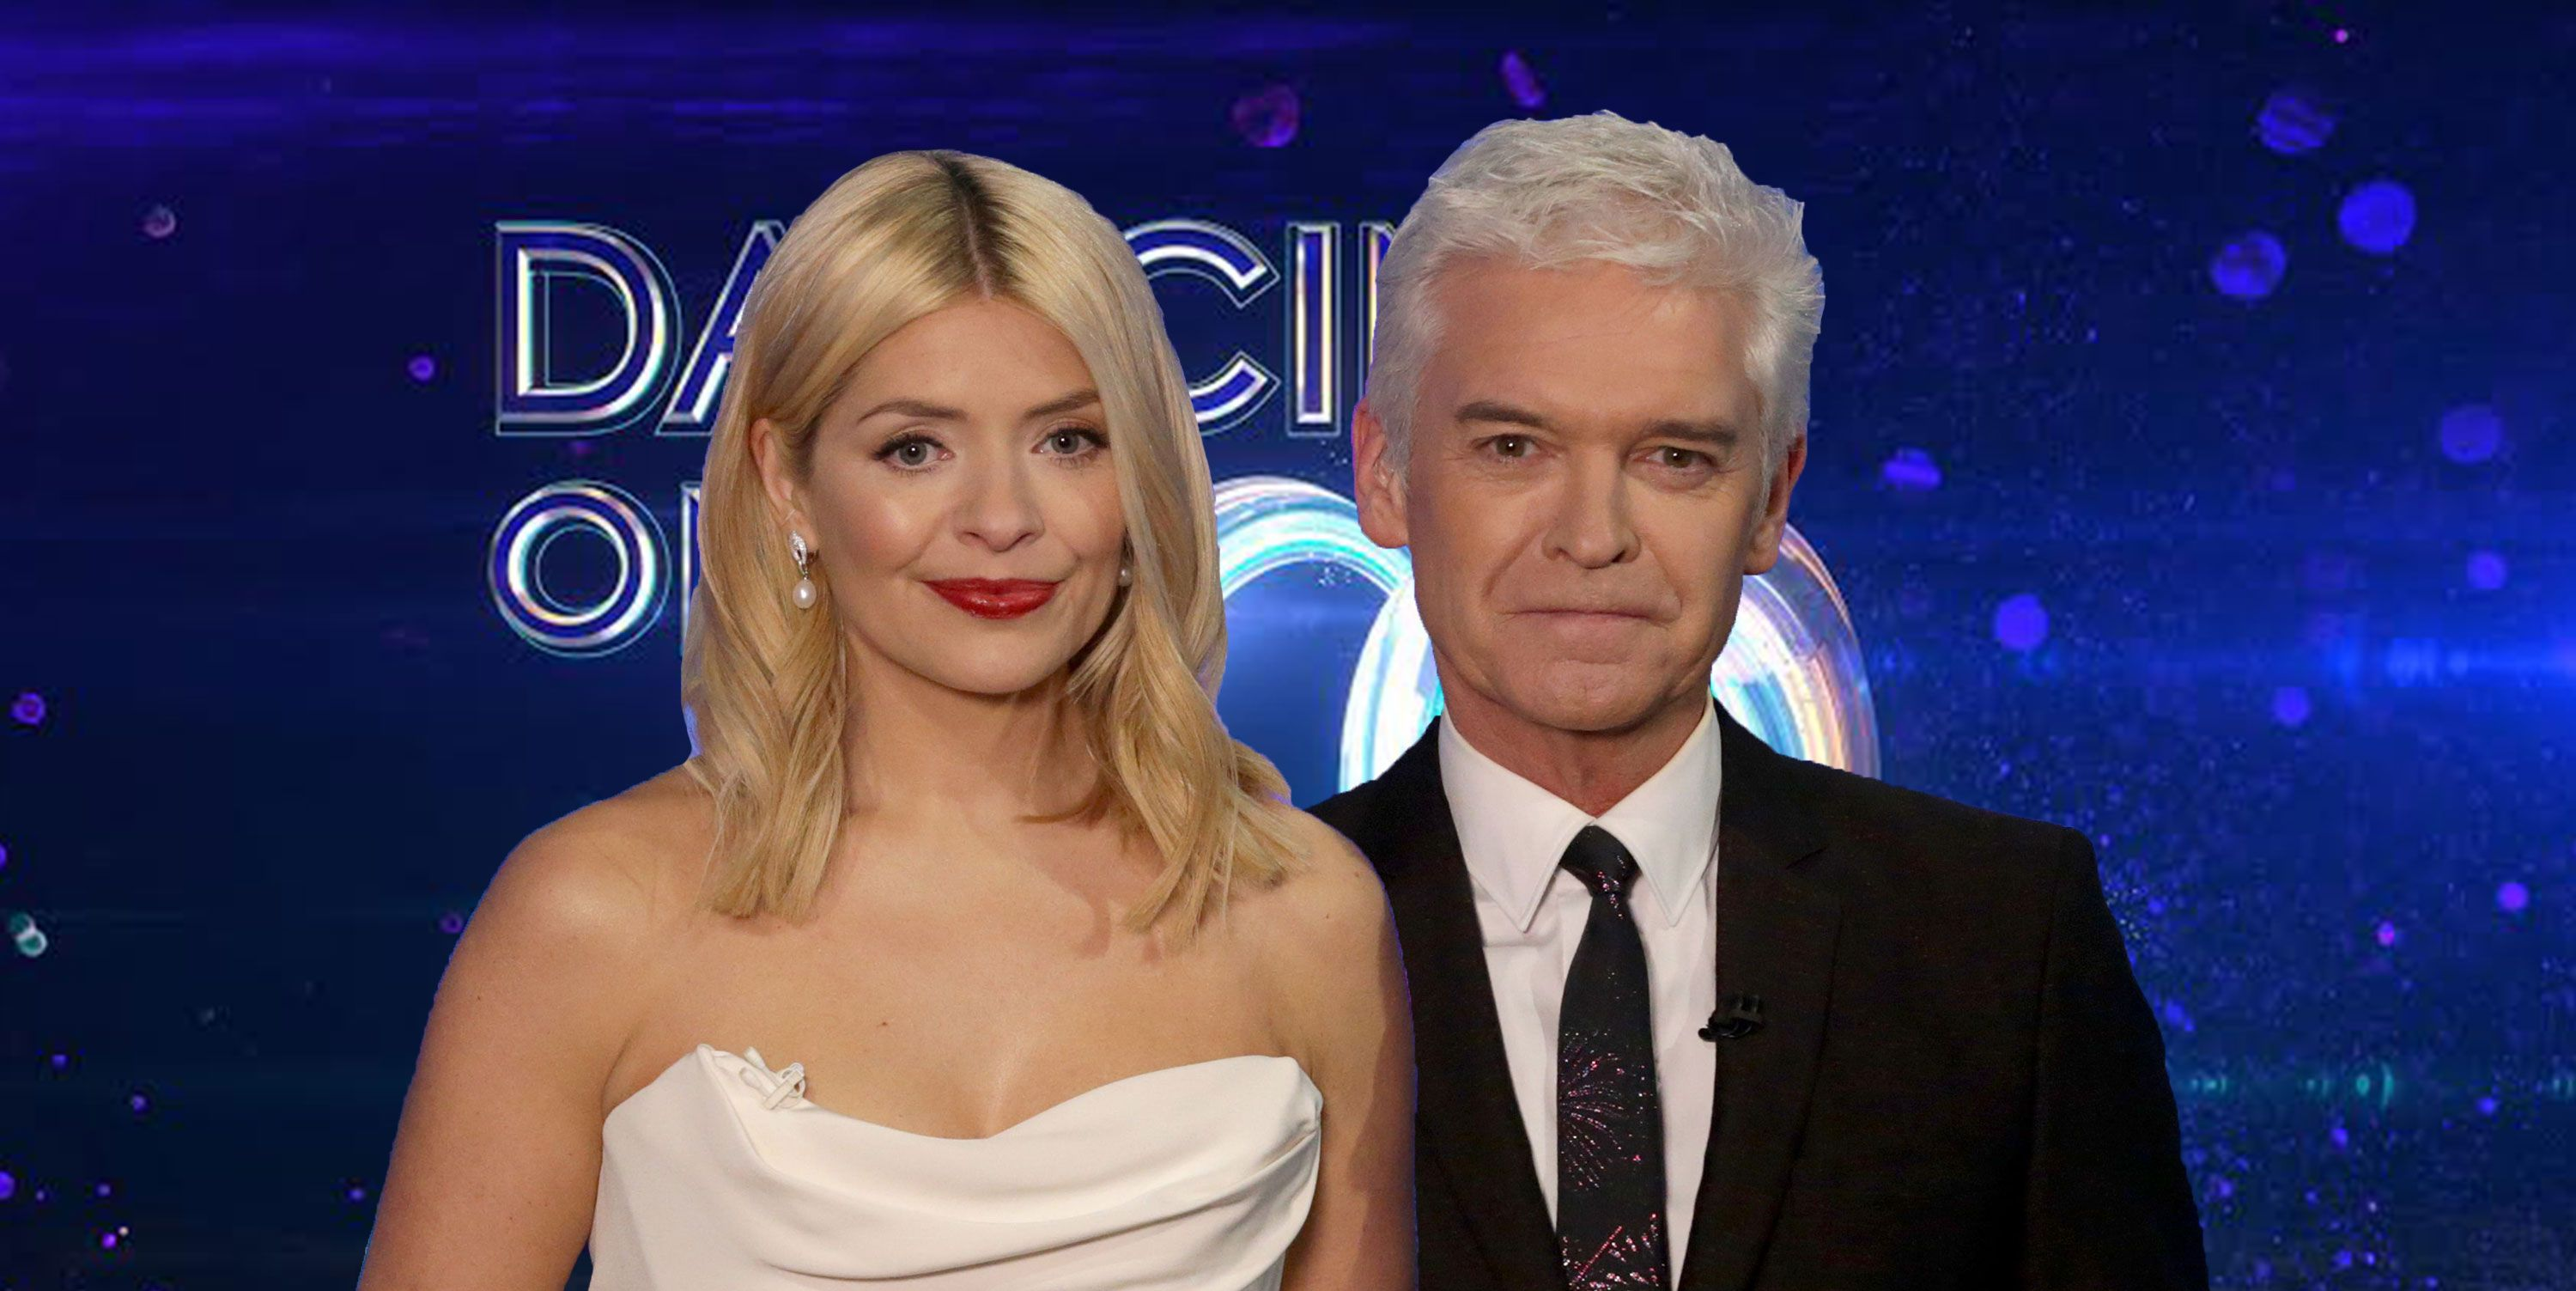 PHOTOSHOP, Dancing on Ice, Holly Willoughby, Phillip Schofield